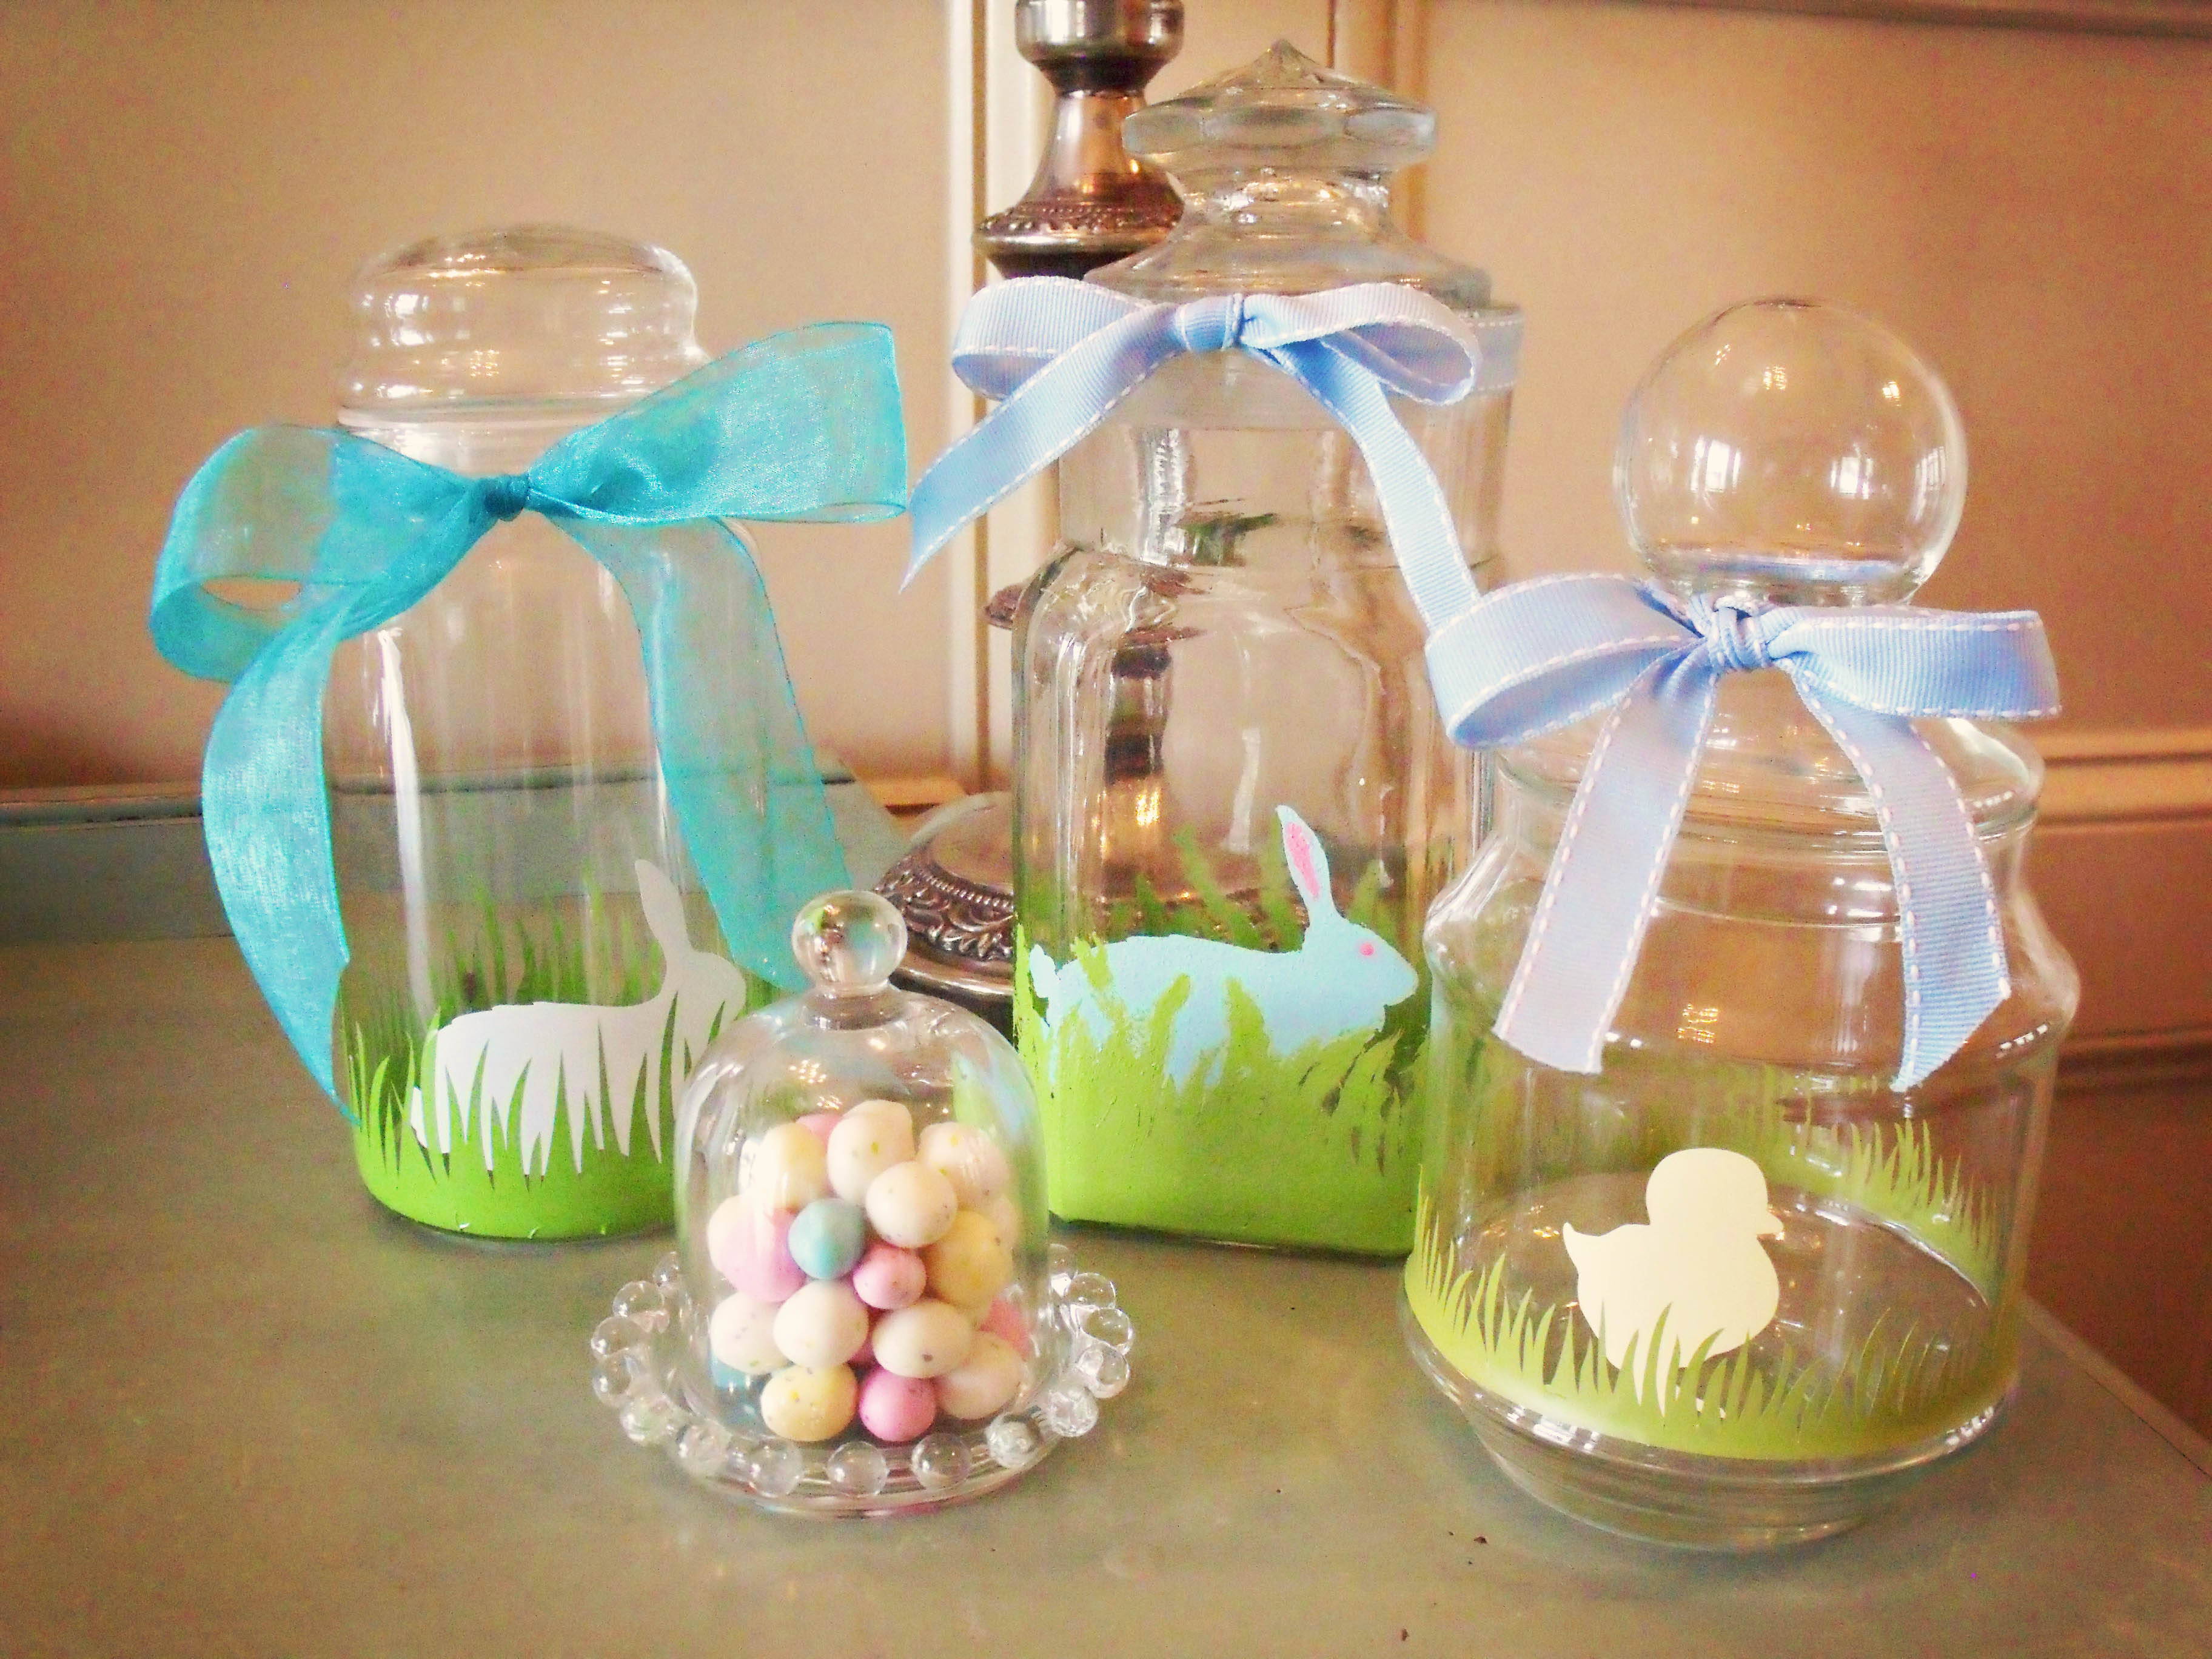 Atta girl amy s homemade easter decor atta girl says Images for easter decorations